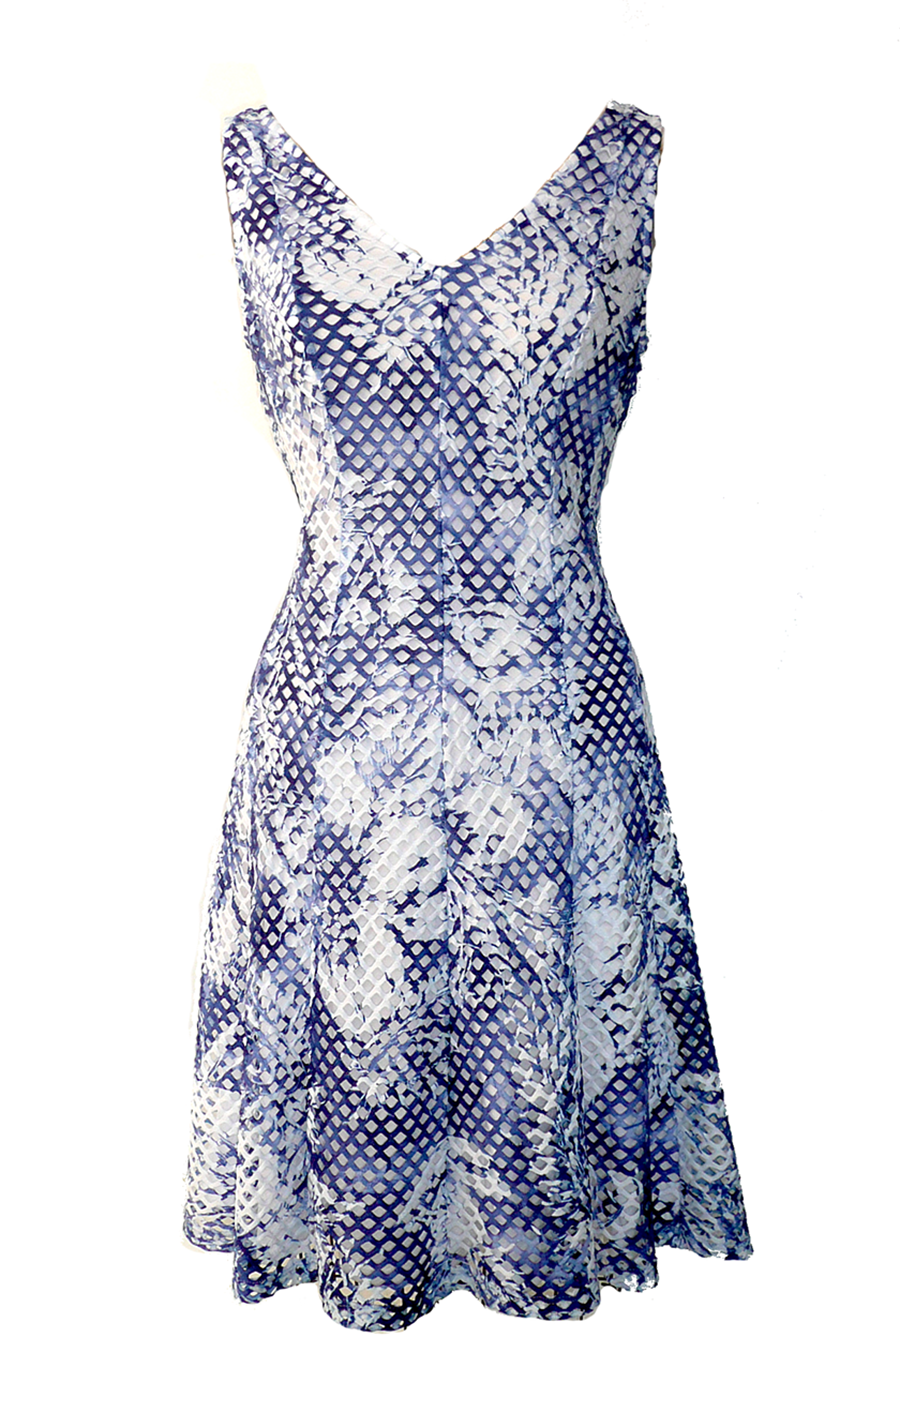 dress open lattice print.png